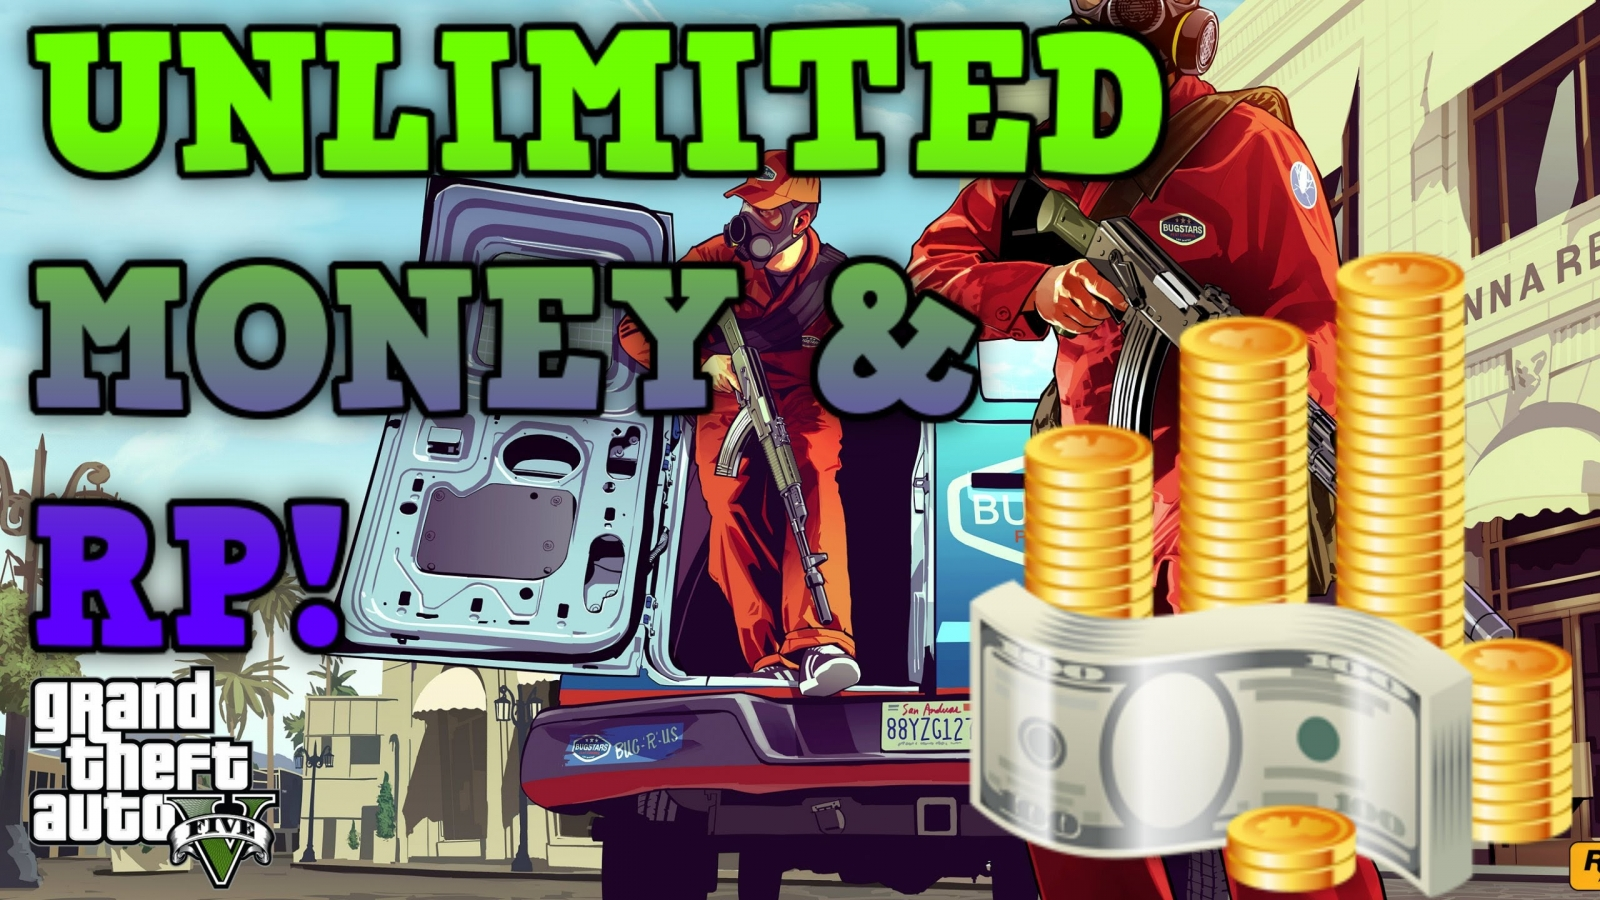 GTA 5 Online: Unlimited money (Solo and Non-Solo) and RP glitches for Patch 1.19/1.20/1.21